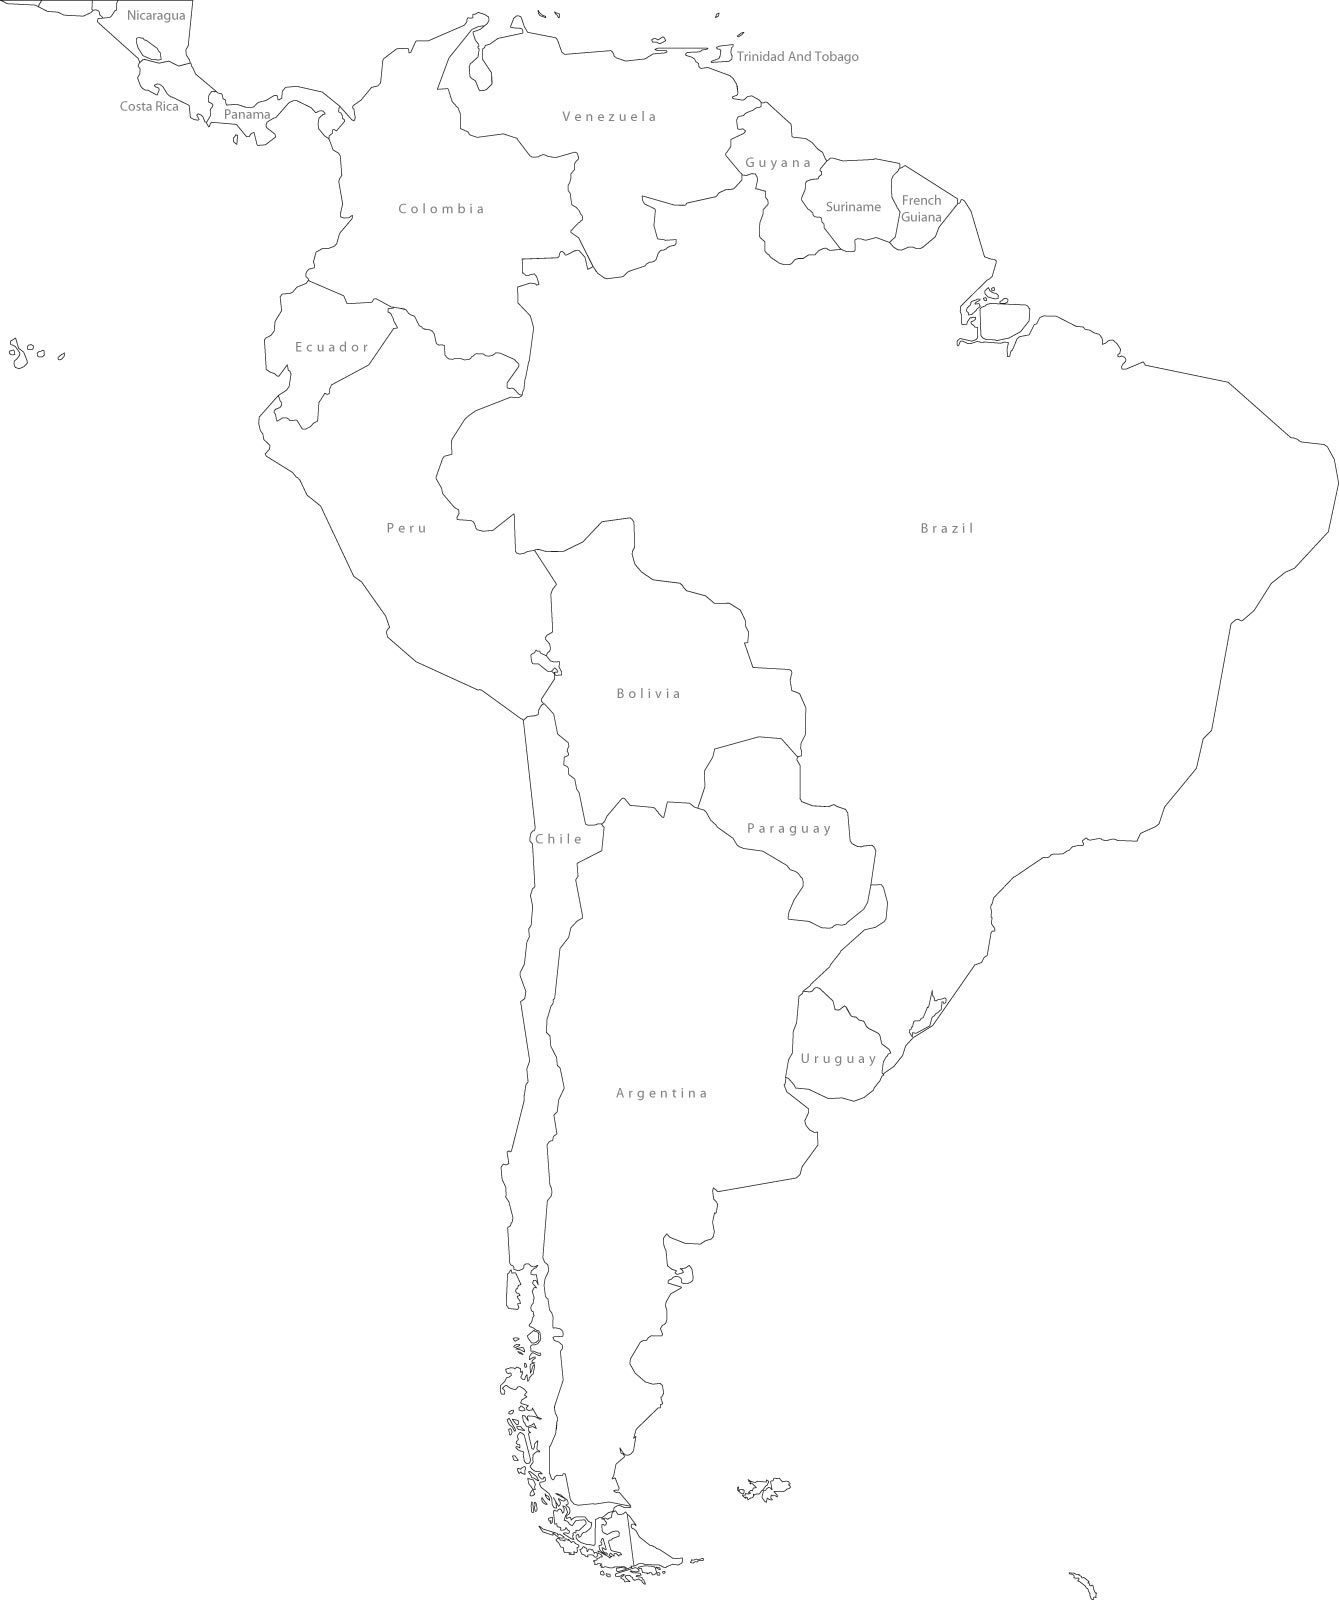 Big Blank Map Of South America